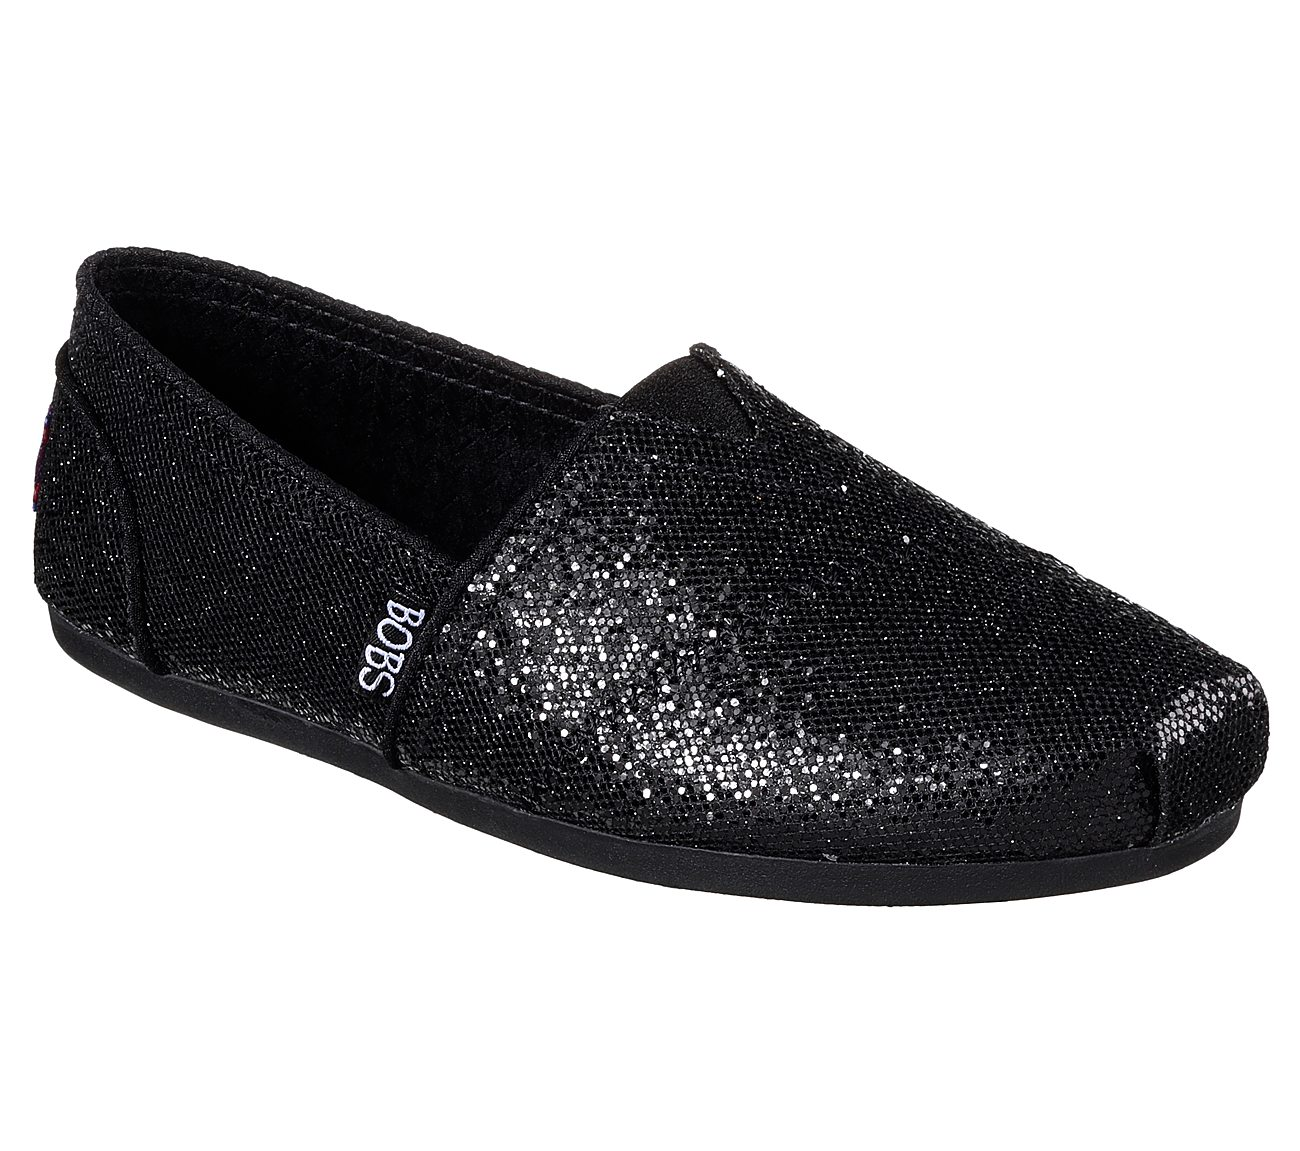 Black Friday Bobs Shoes